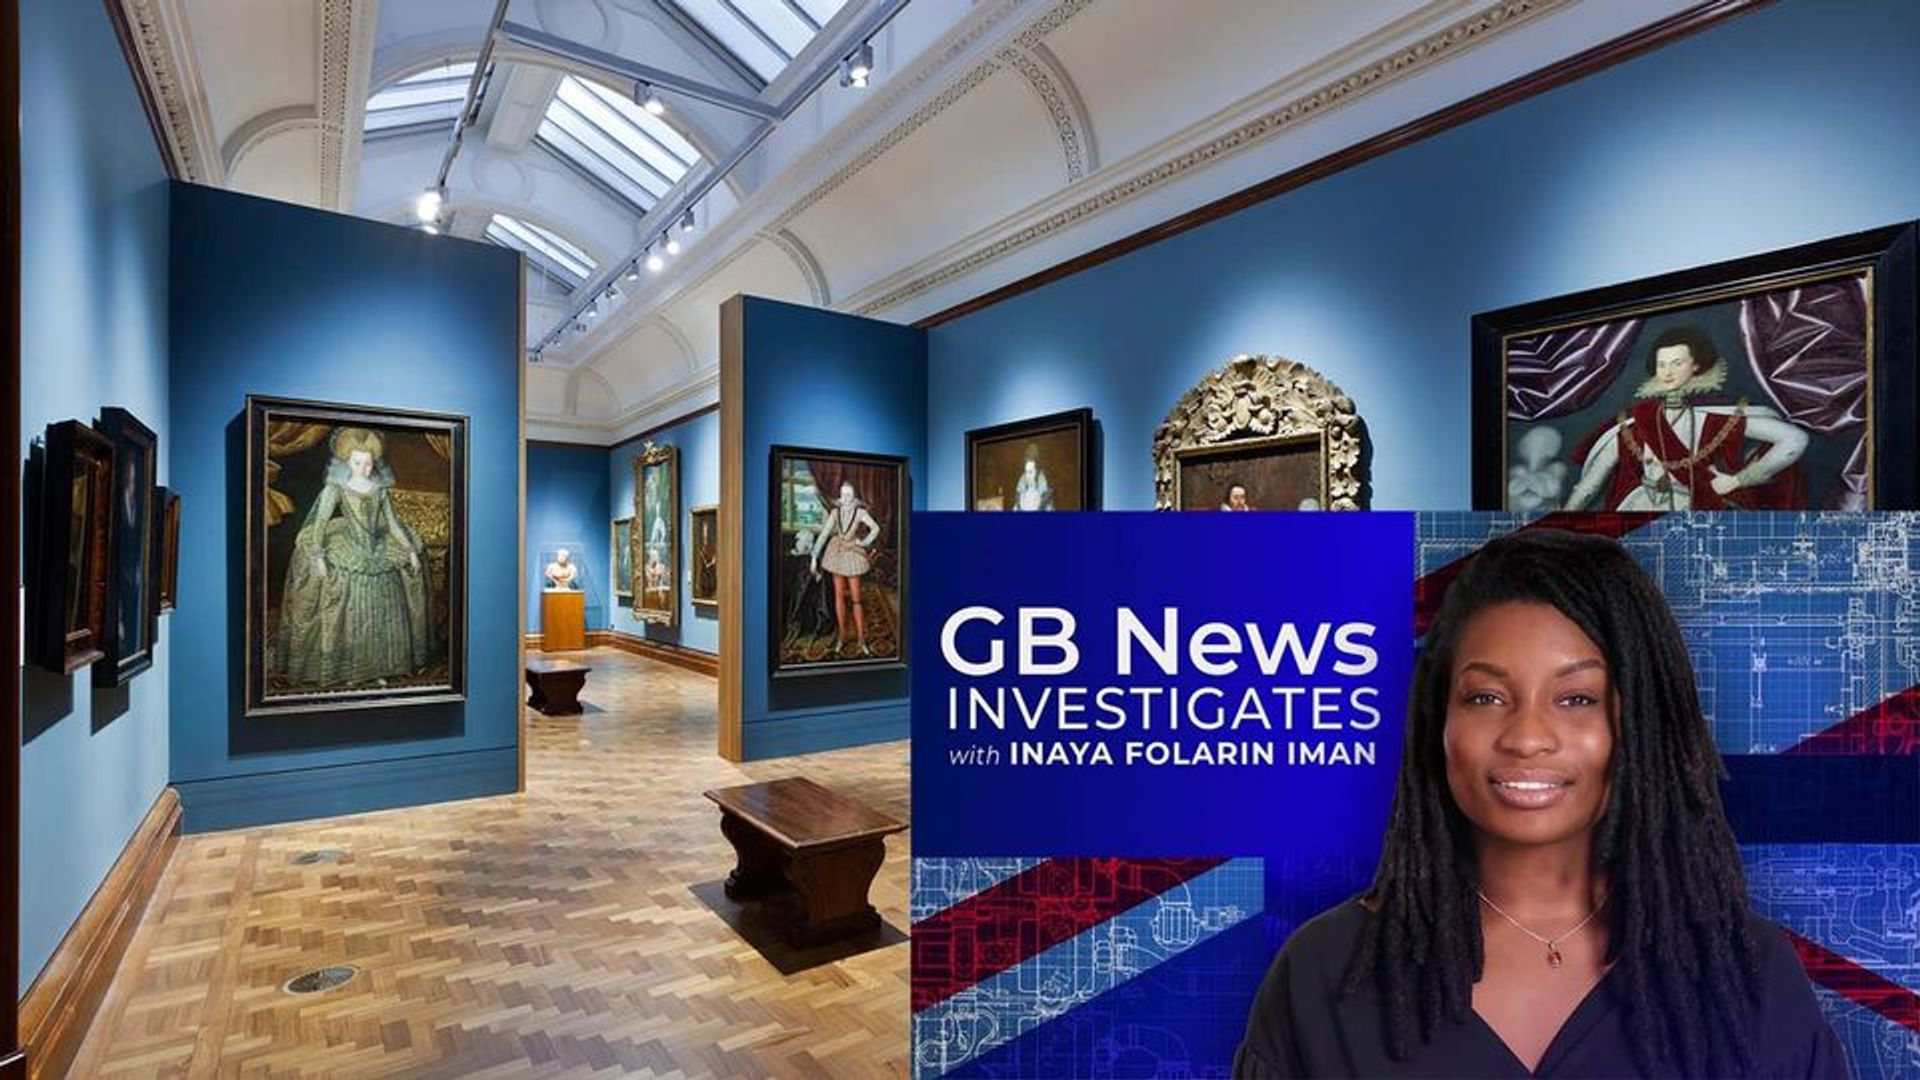 Inaya Folarin Iman (inset right) has been appointed a trustee of the National Portrait Gallery, London